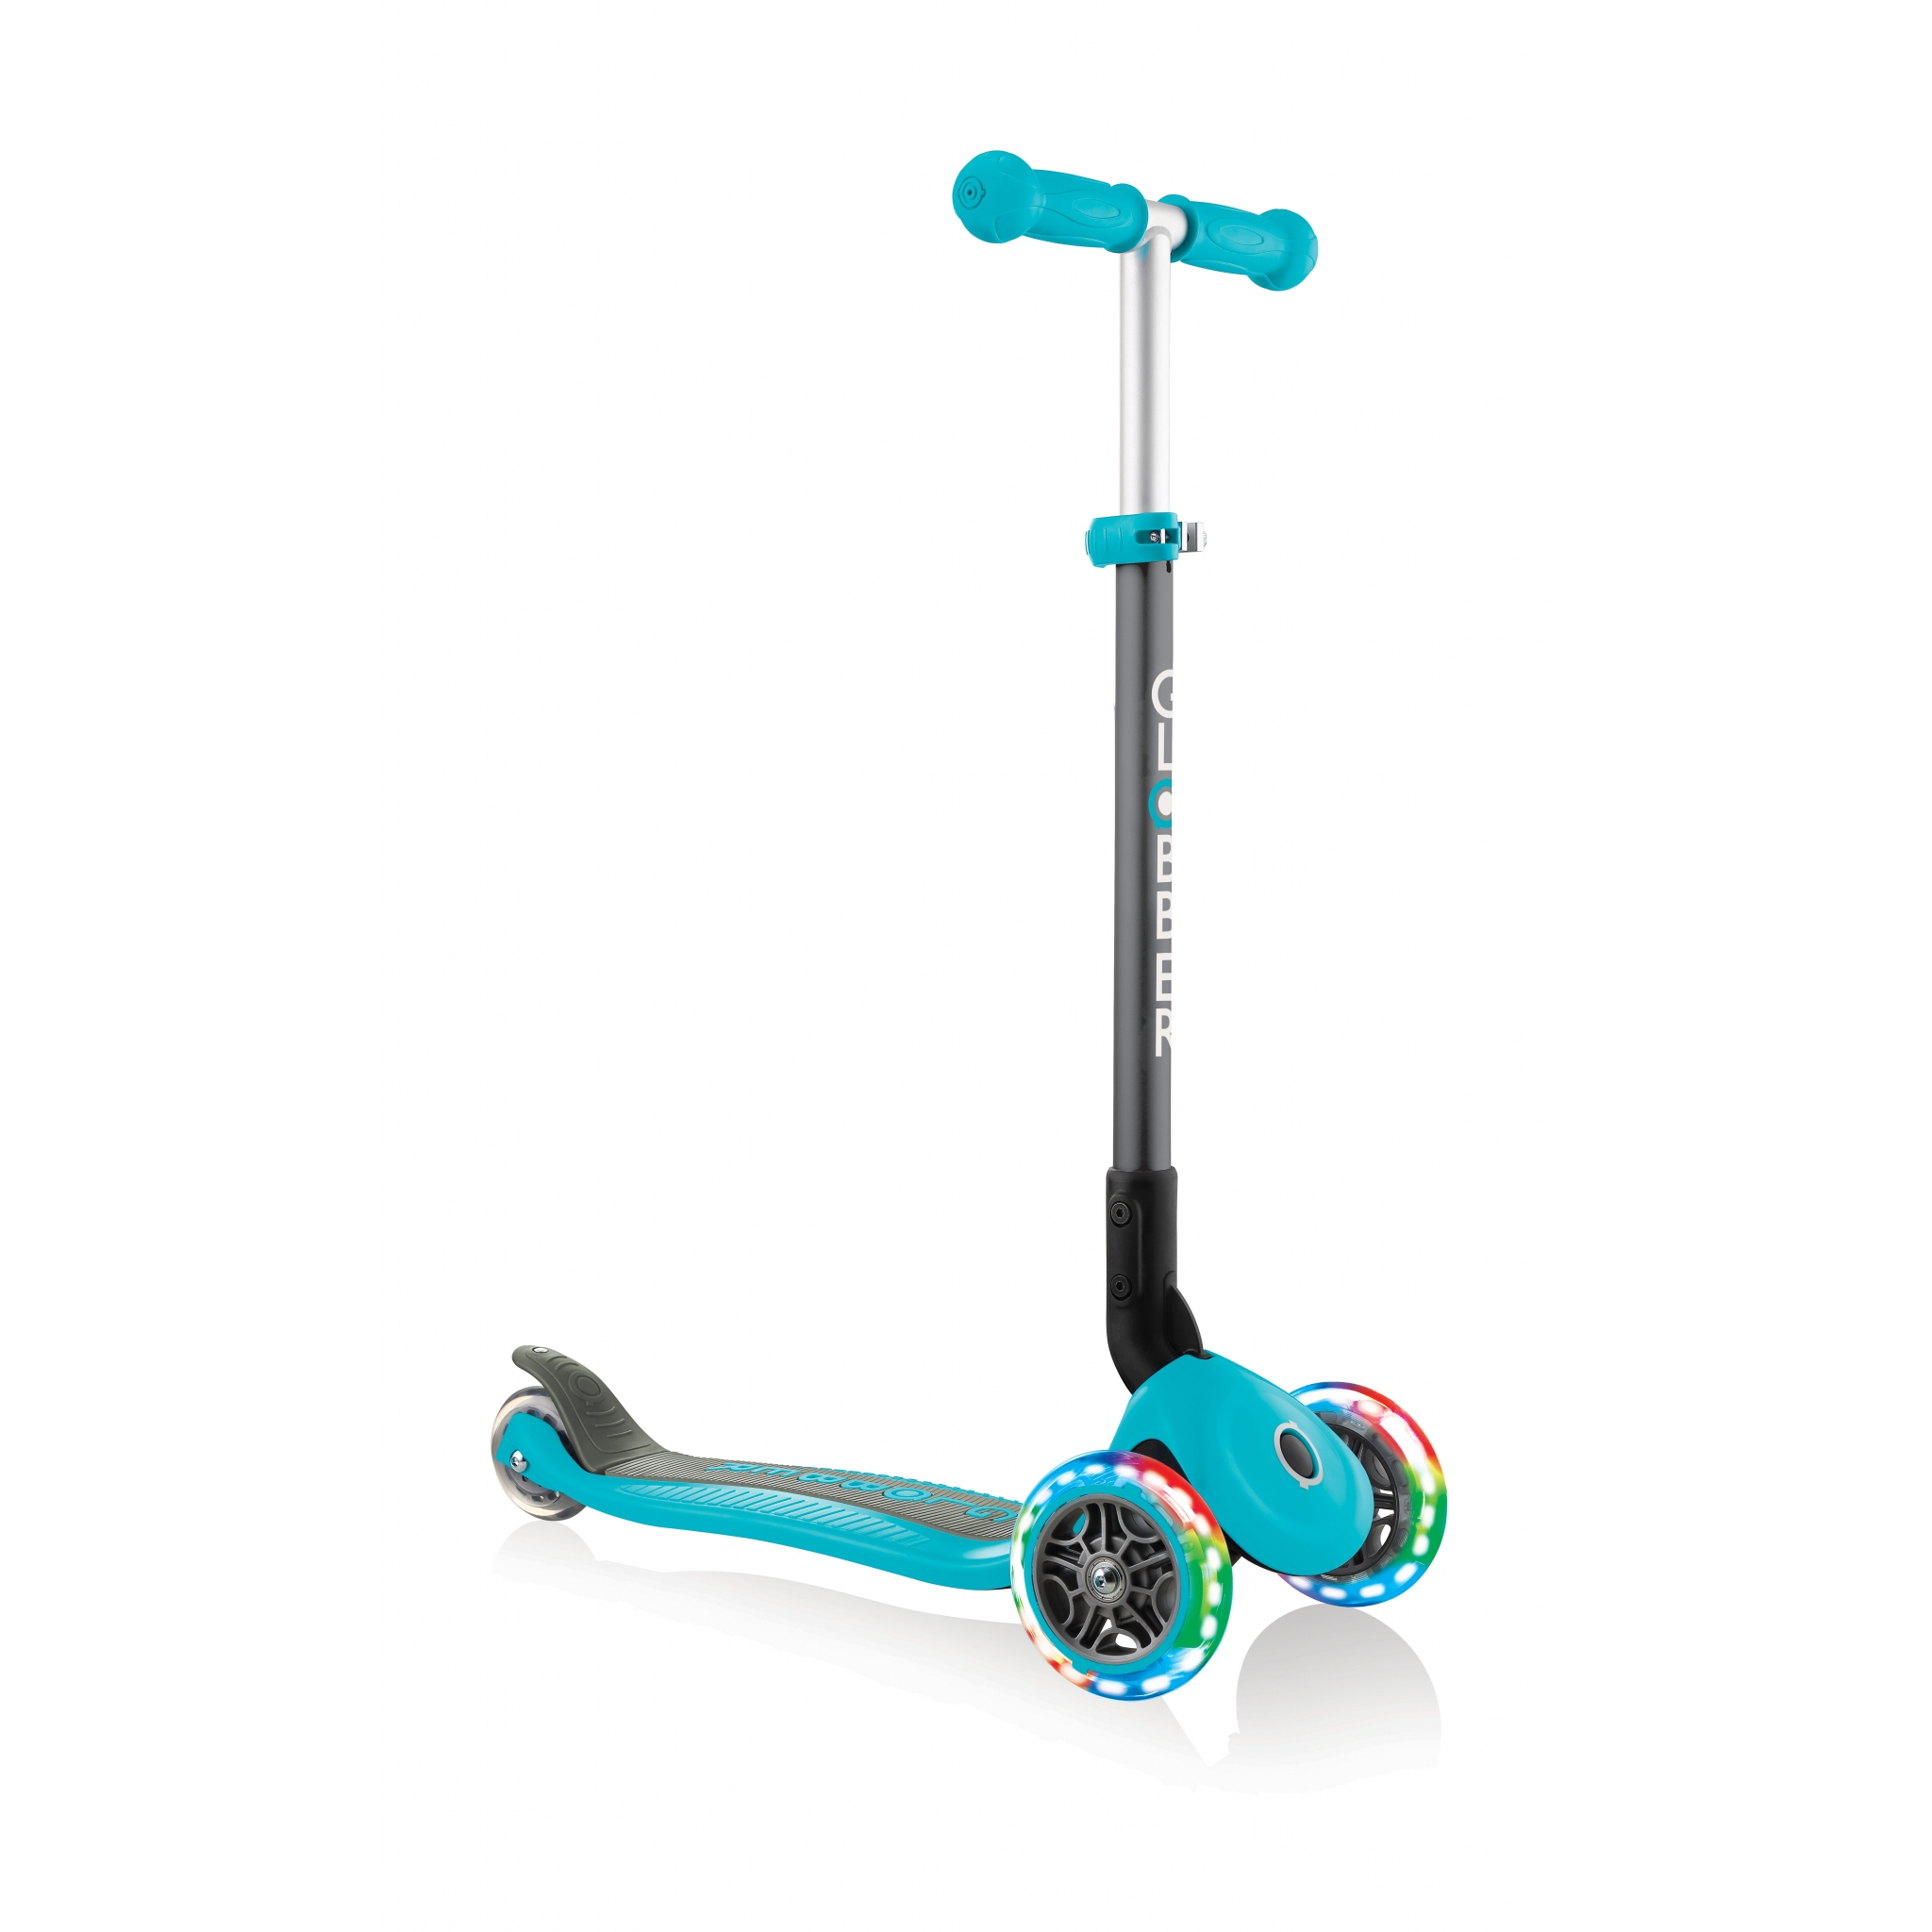 PRIMO-FOLDABLE-LIGHTS-3-wheel-foldable-scooter-light-up-scooter-for-kids-teal 4